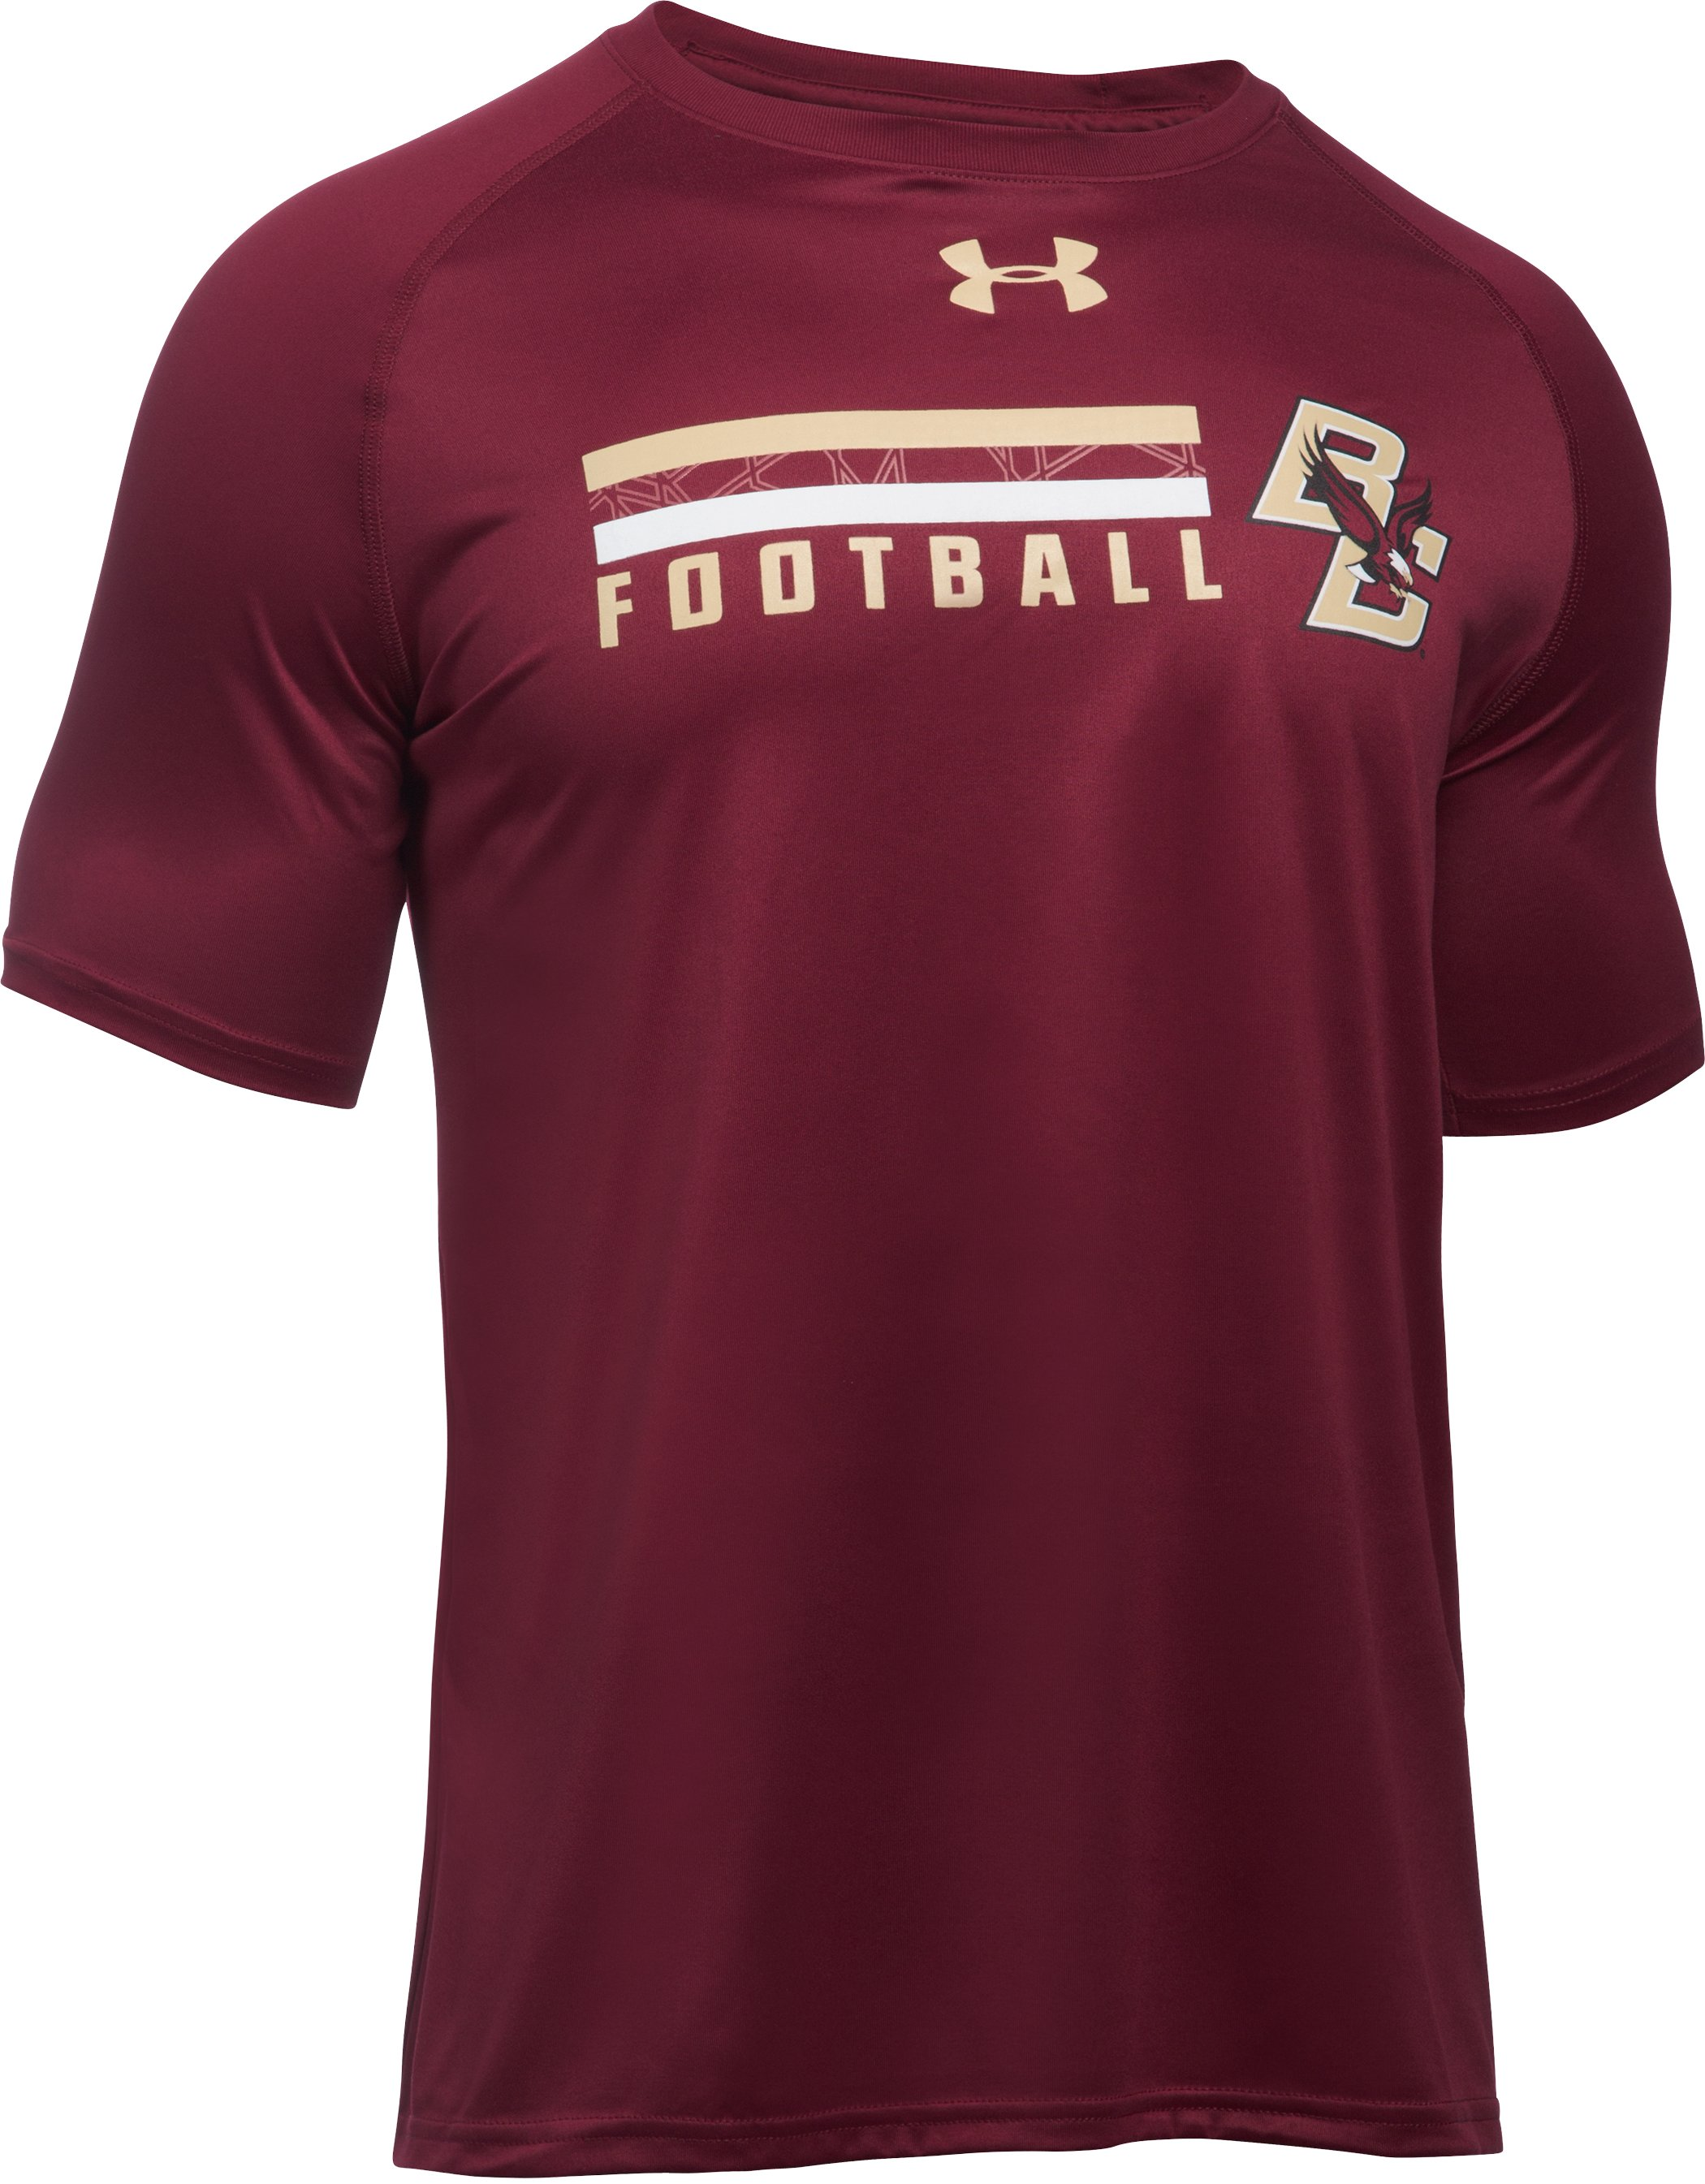 Men's Boston College UA Tech™ Sideline T-Shirt, Cardinal, undefined